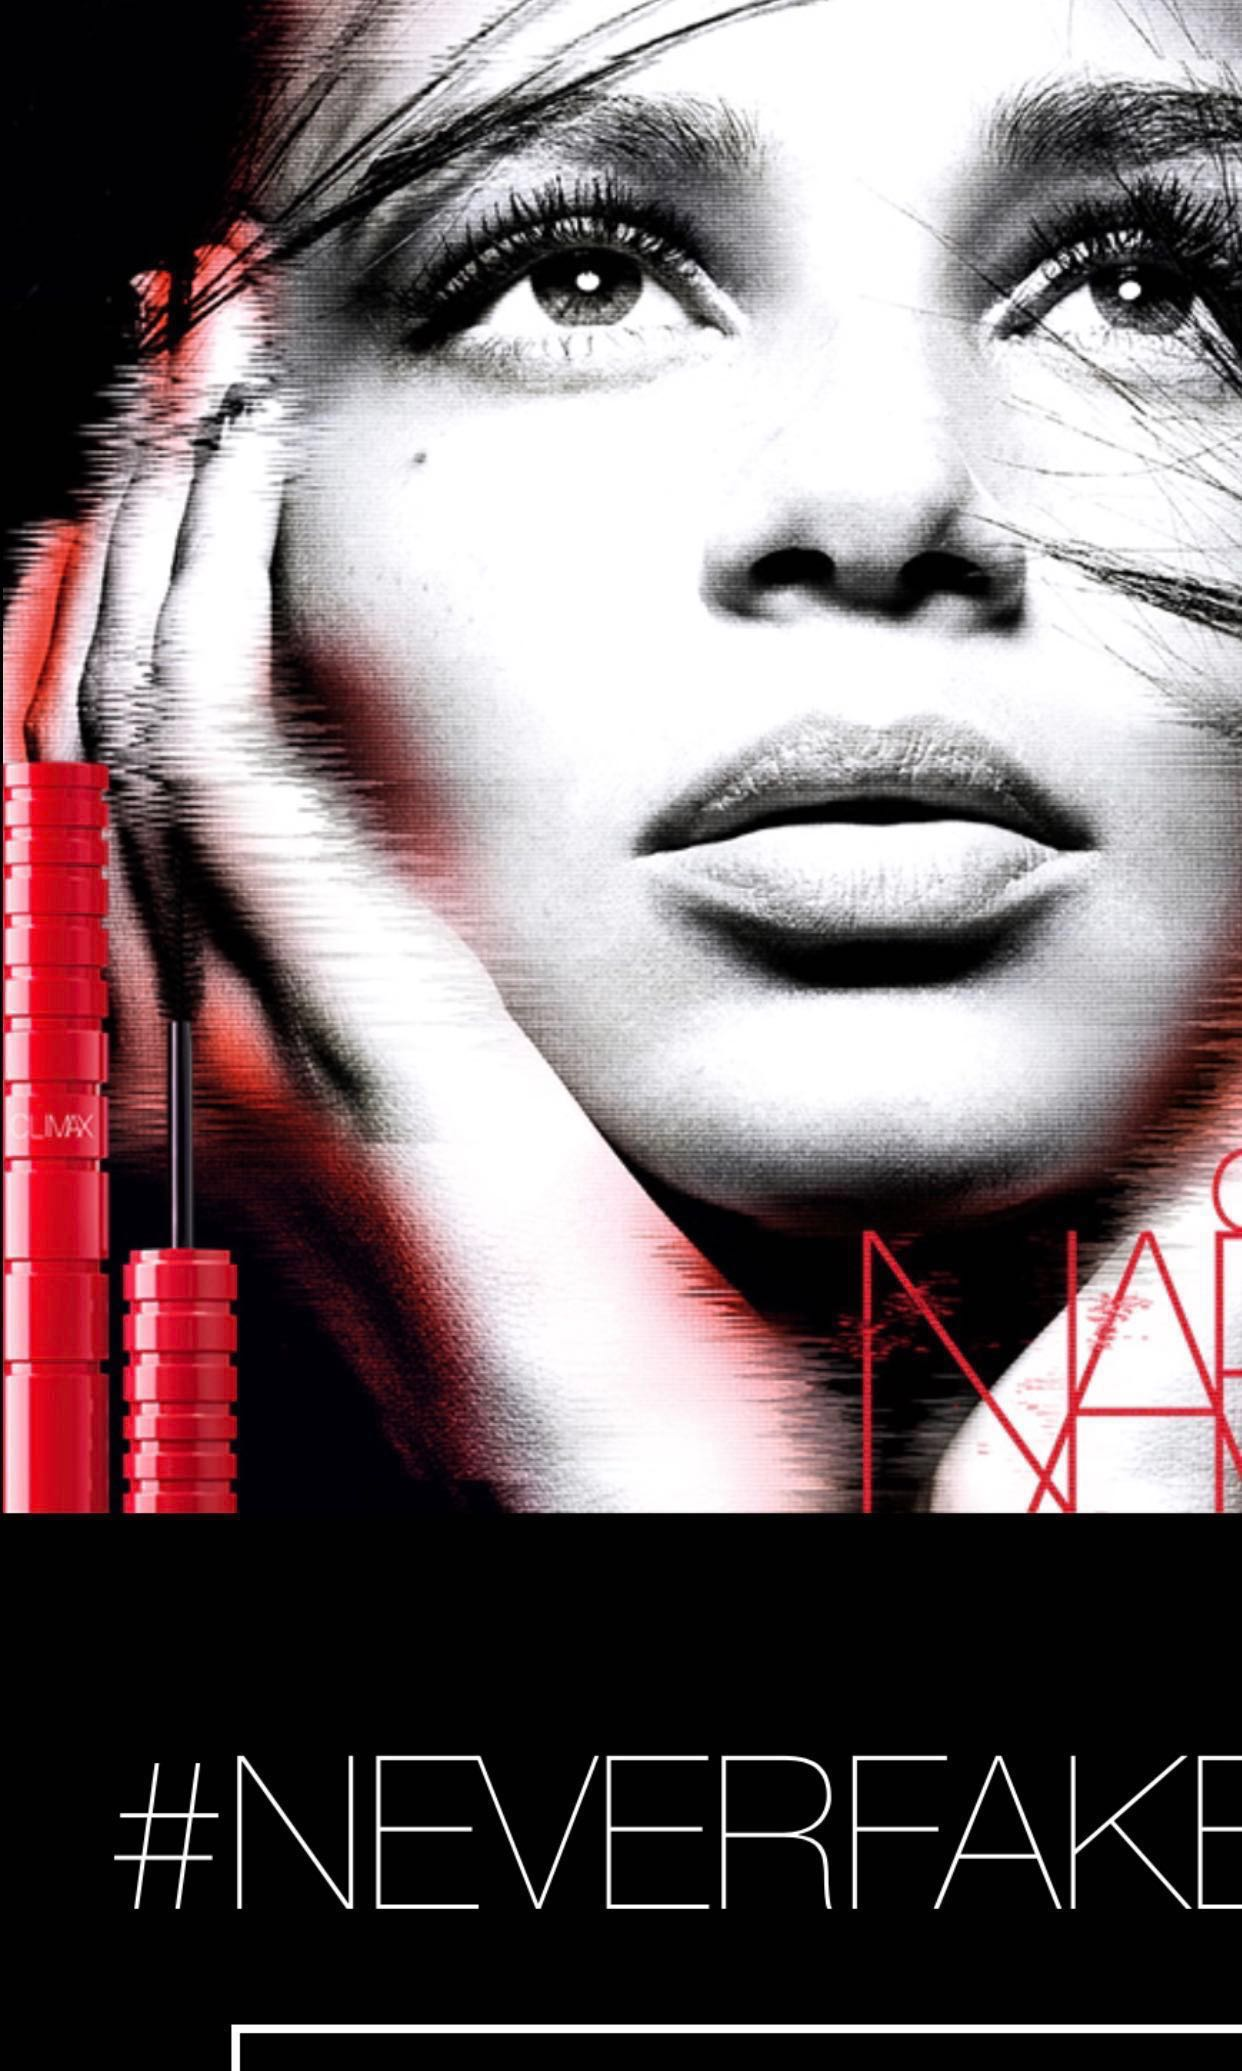 08534660f4d NARS Climax Mascara Trial Size in Explicit Black - 1.8g, Health ...